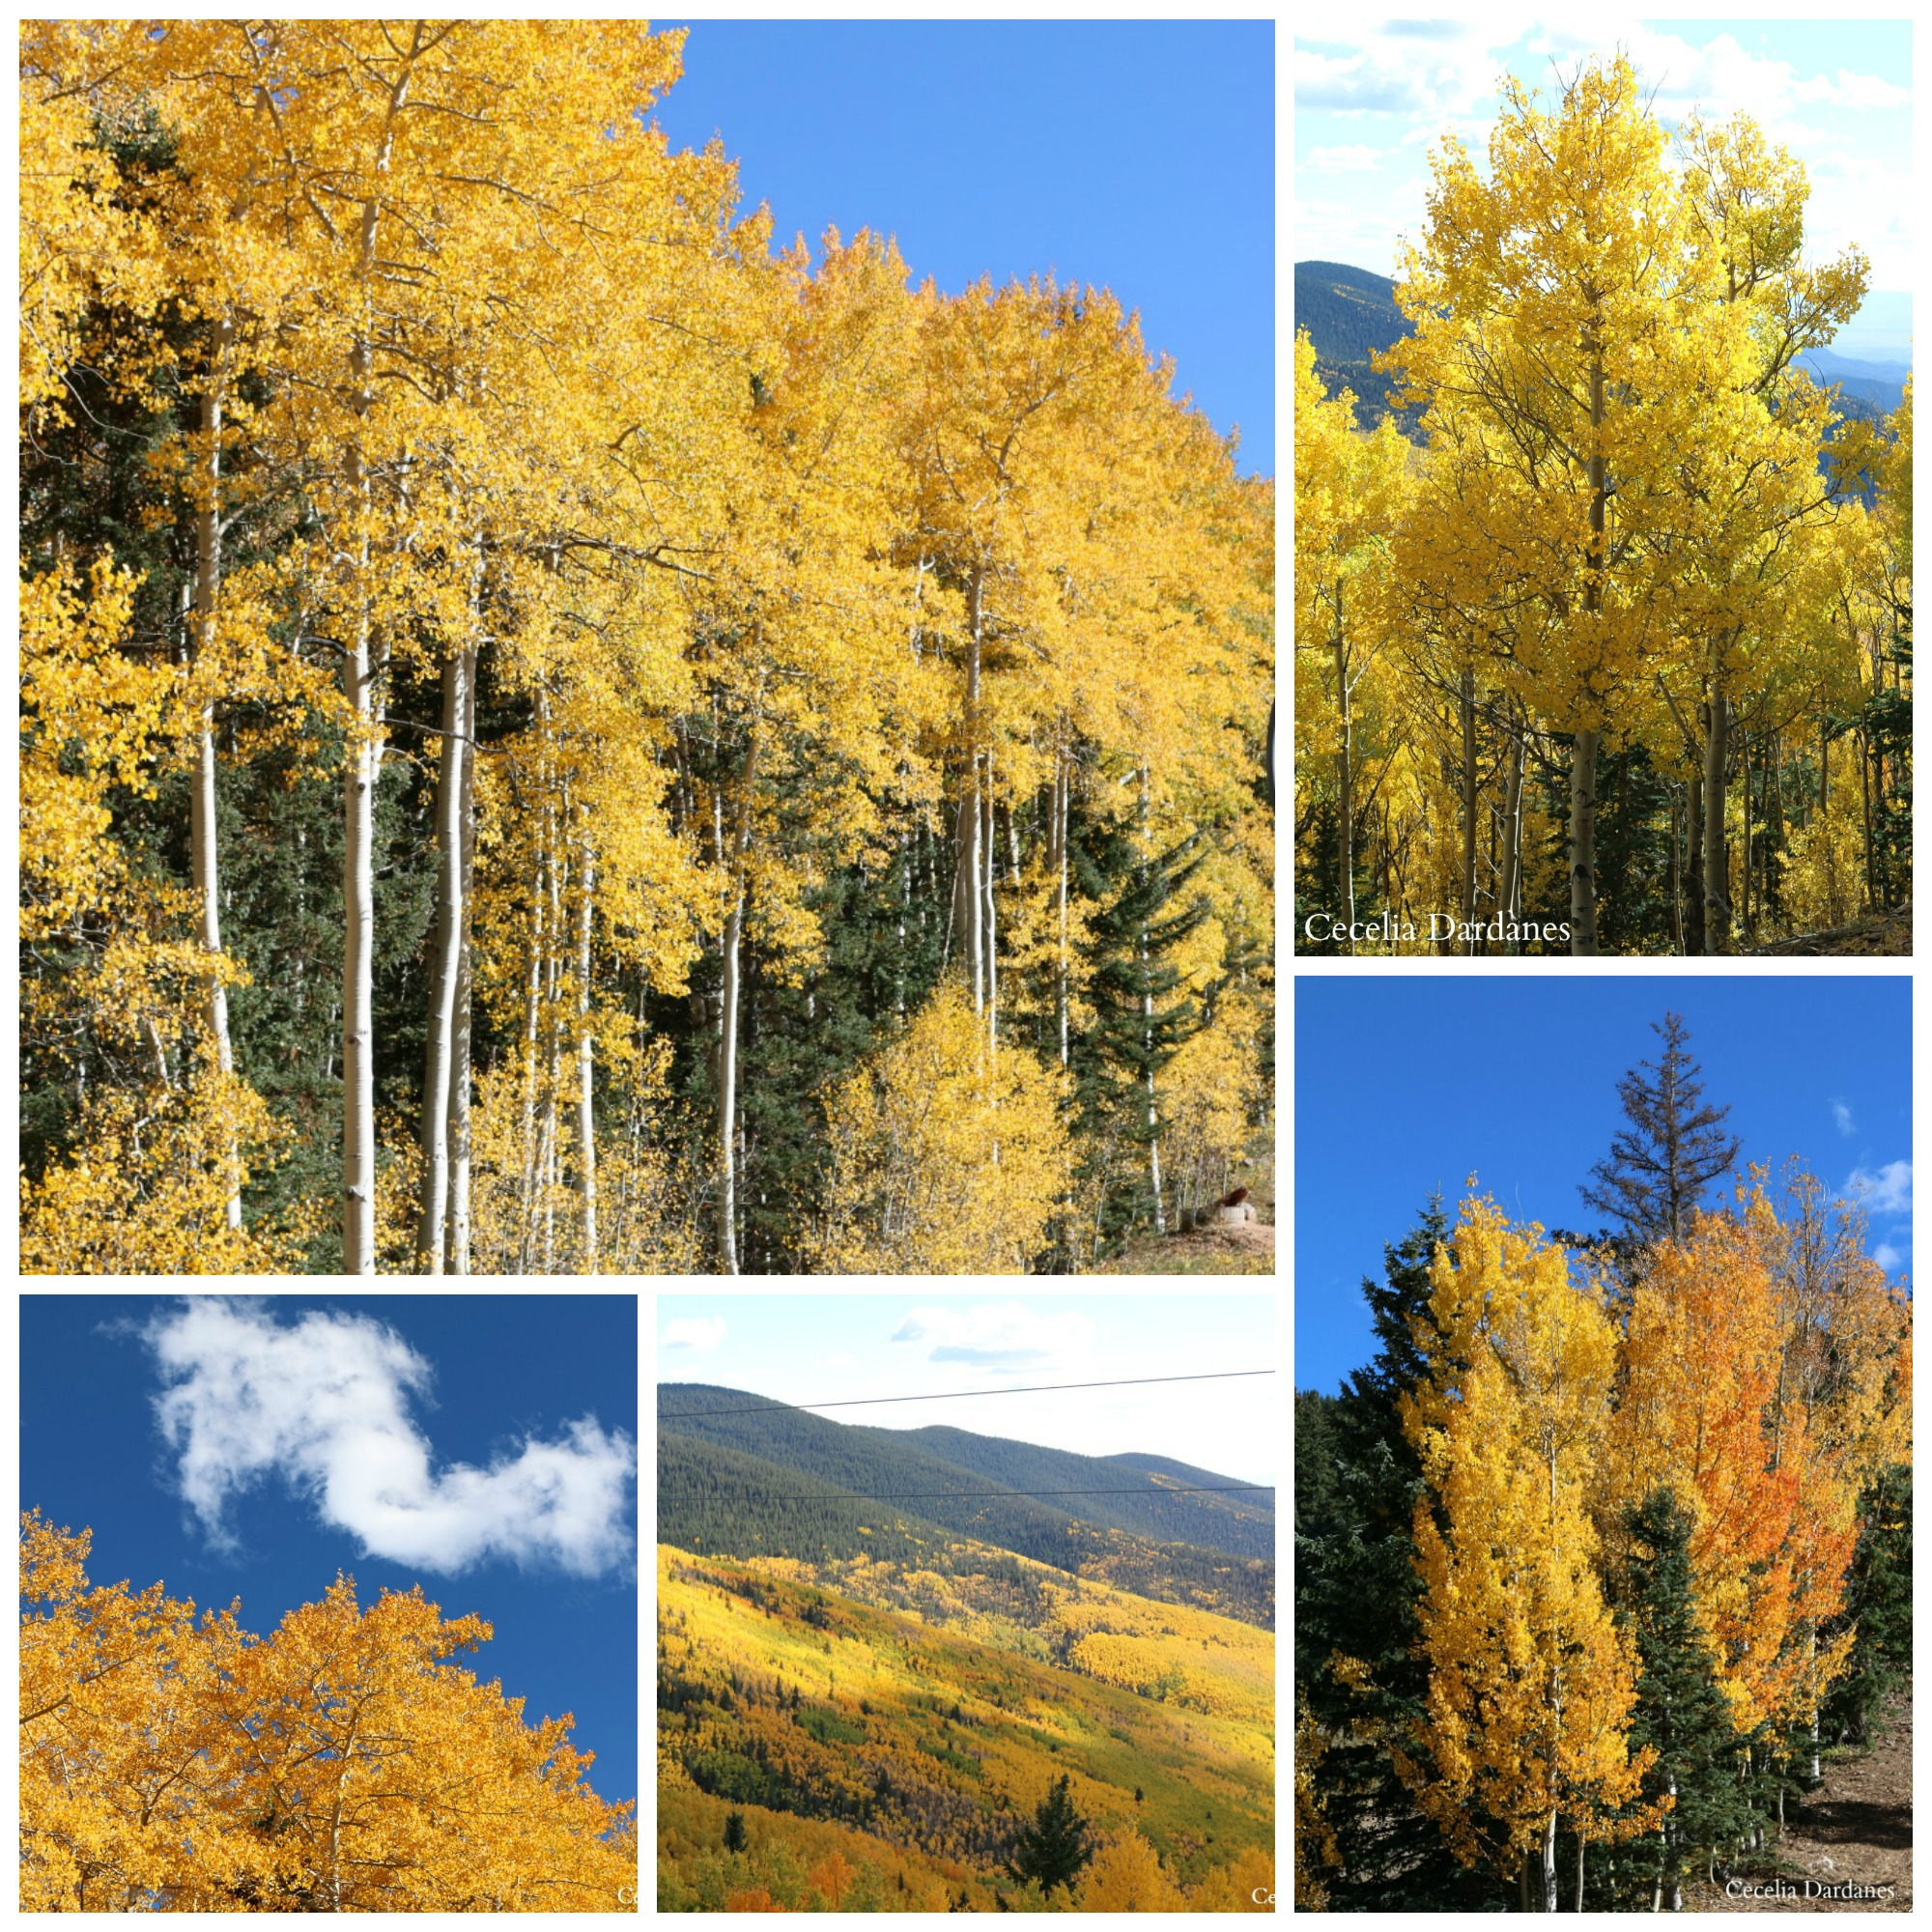 Fall in the mountains of New Mexico is so beautiful. I had friends in from out of town and we ventured up to Ski Santa Fe for the scenic chairlift ride during Balloon Fiesta. The colors were spectacular.